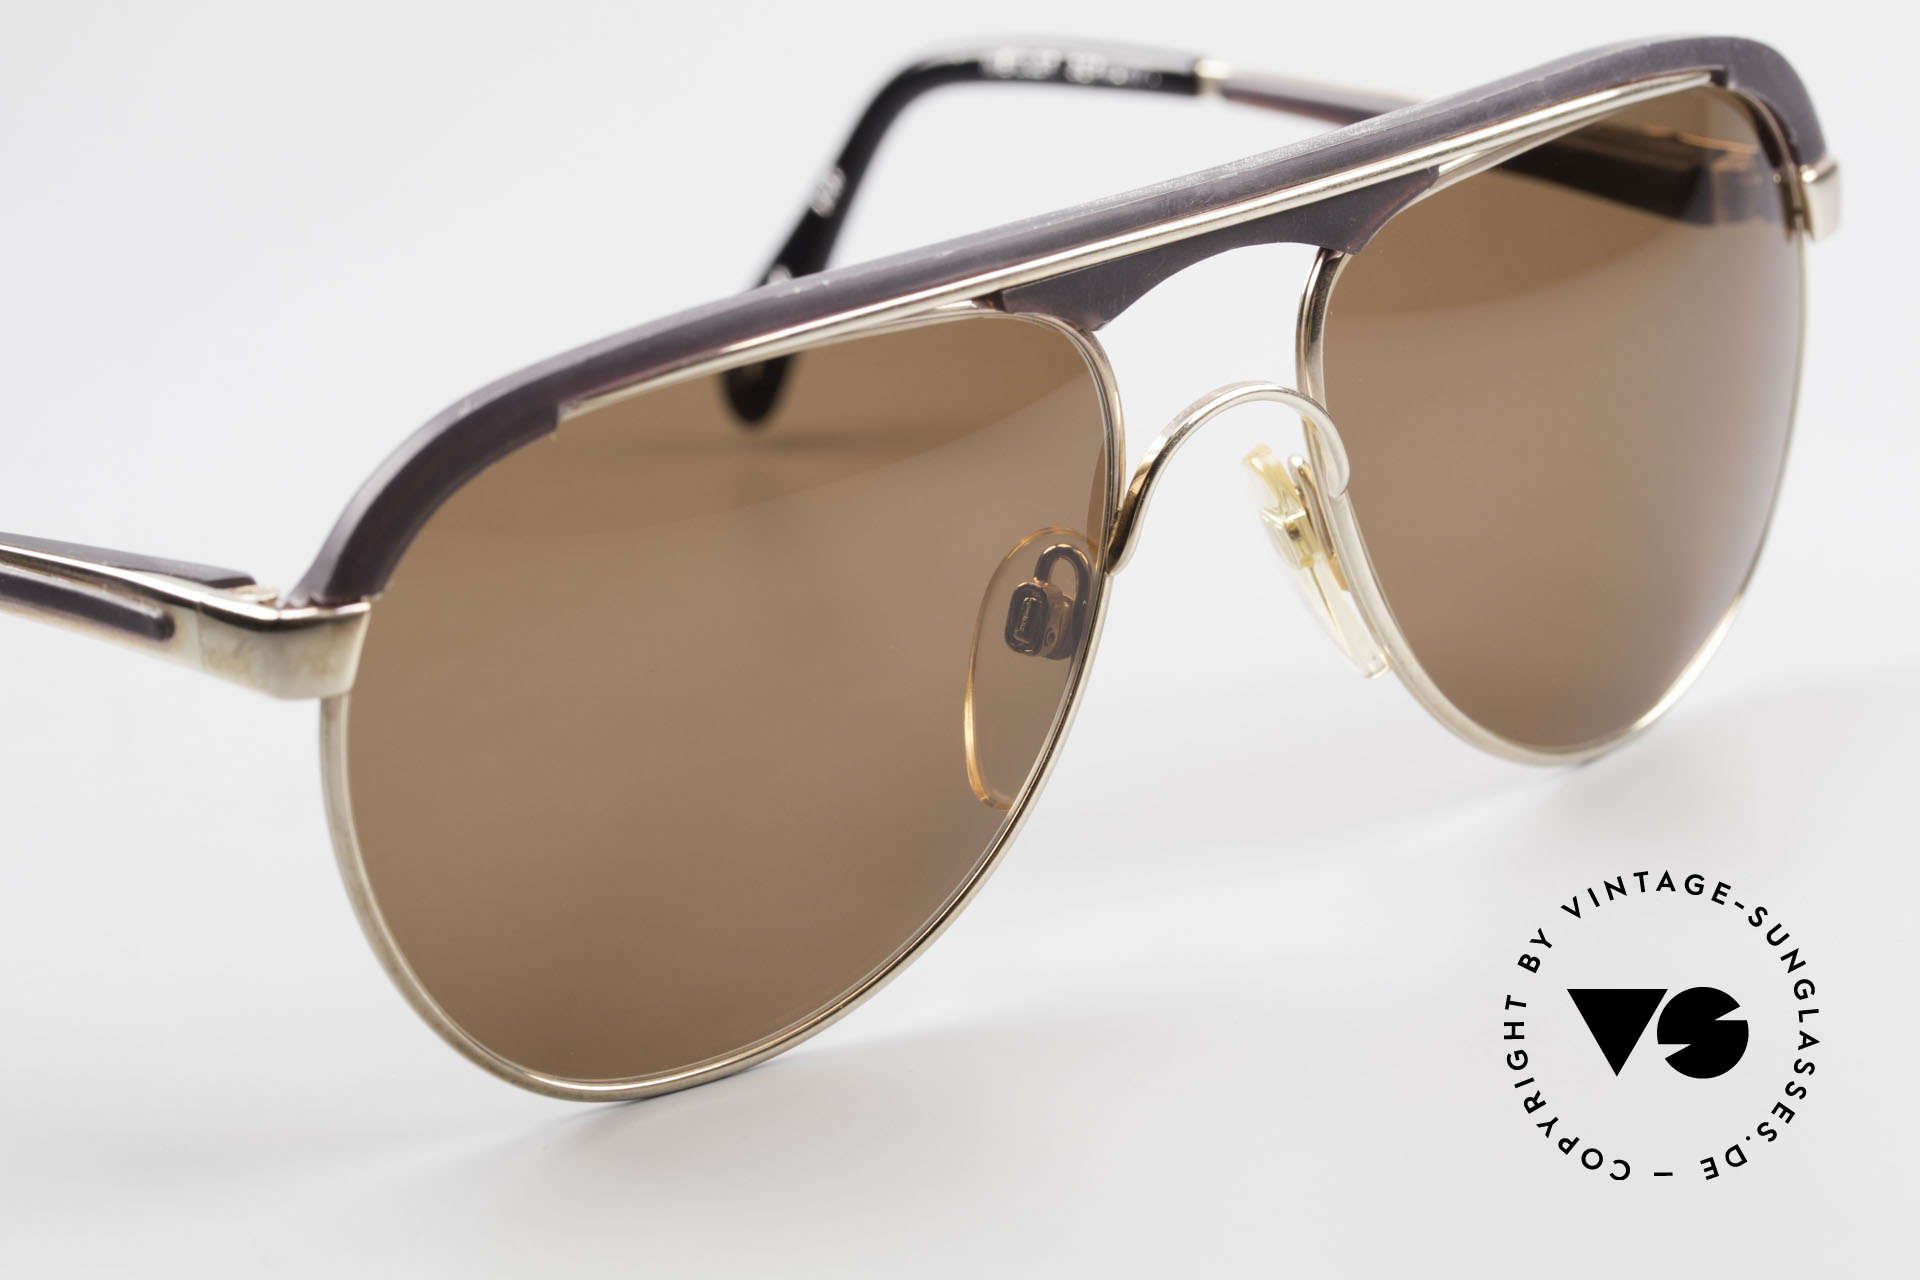 Metzler 0250 True Vintage 80's Sports Shades, NO retro shades, but an authentic 35 years old original, Made for Men